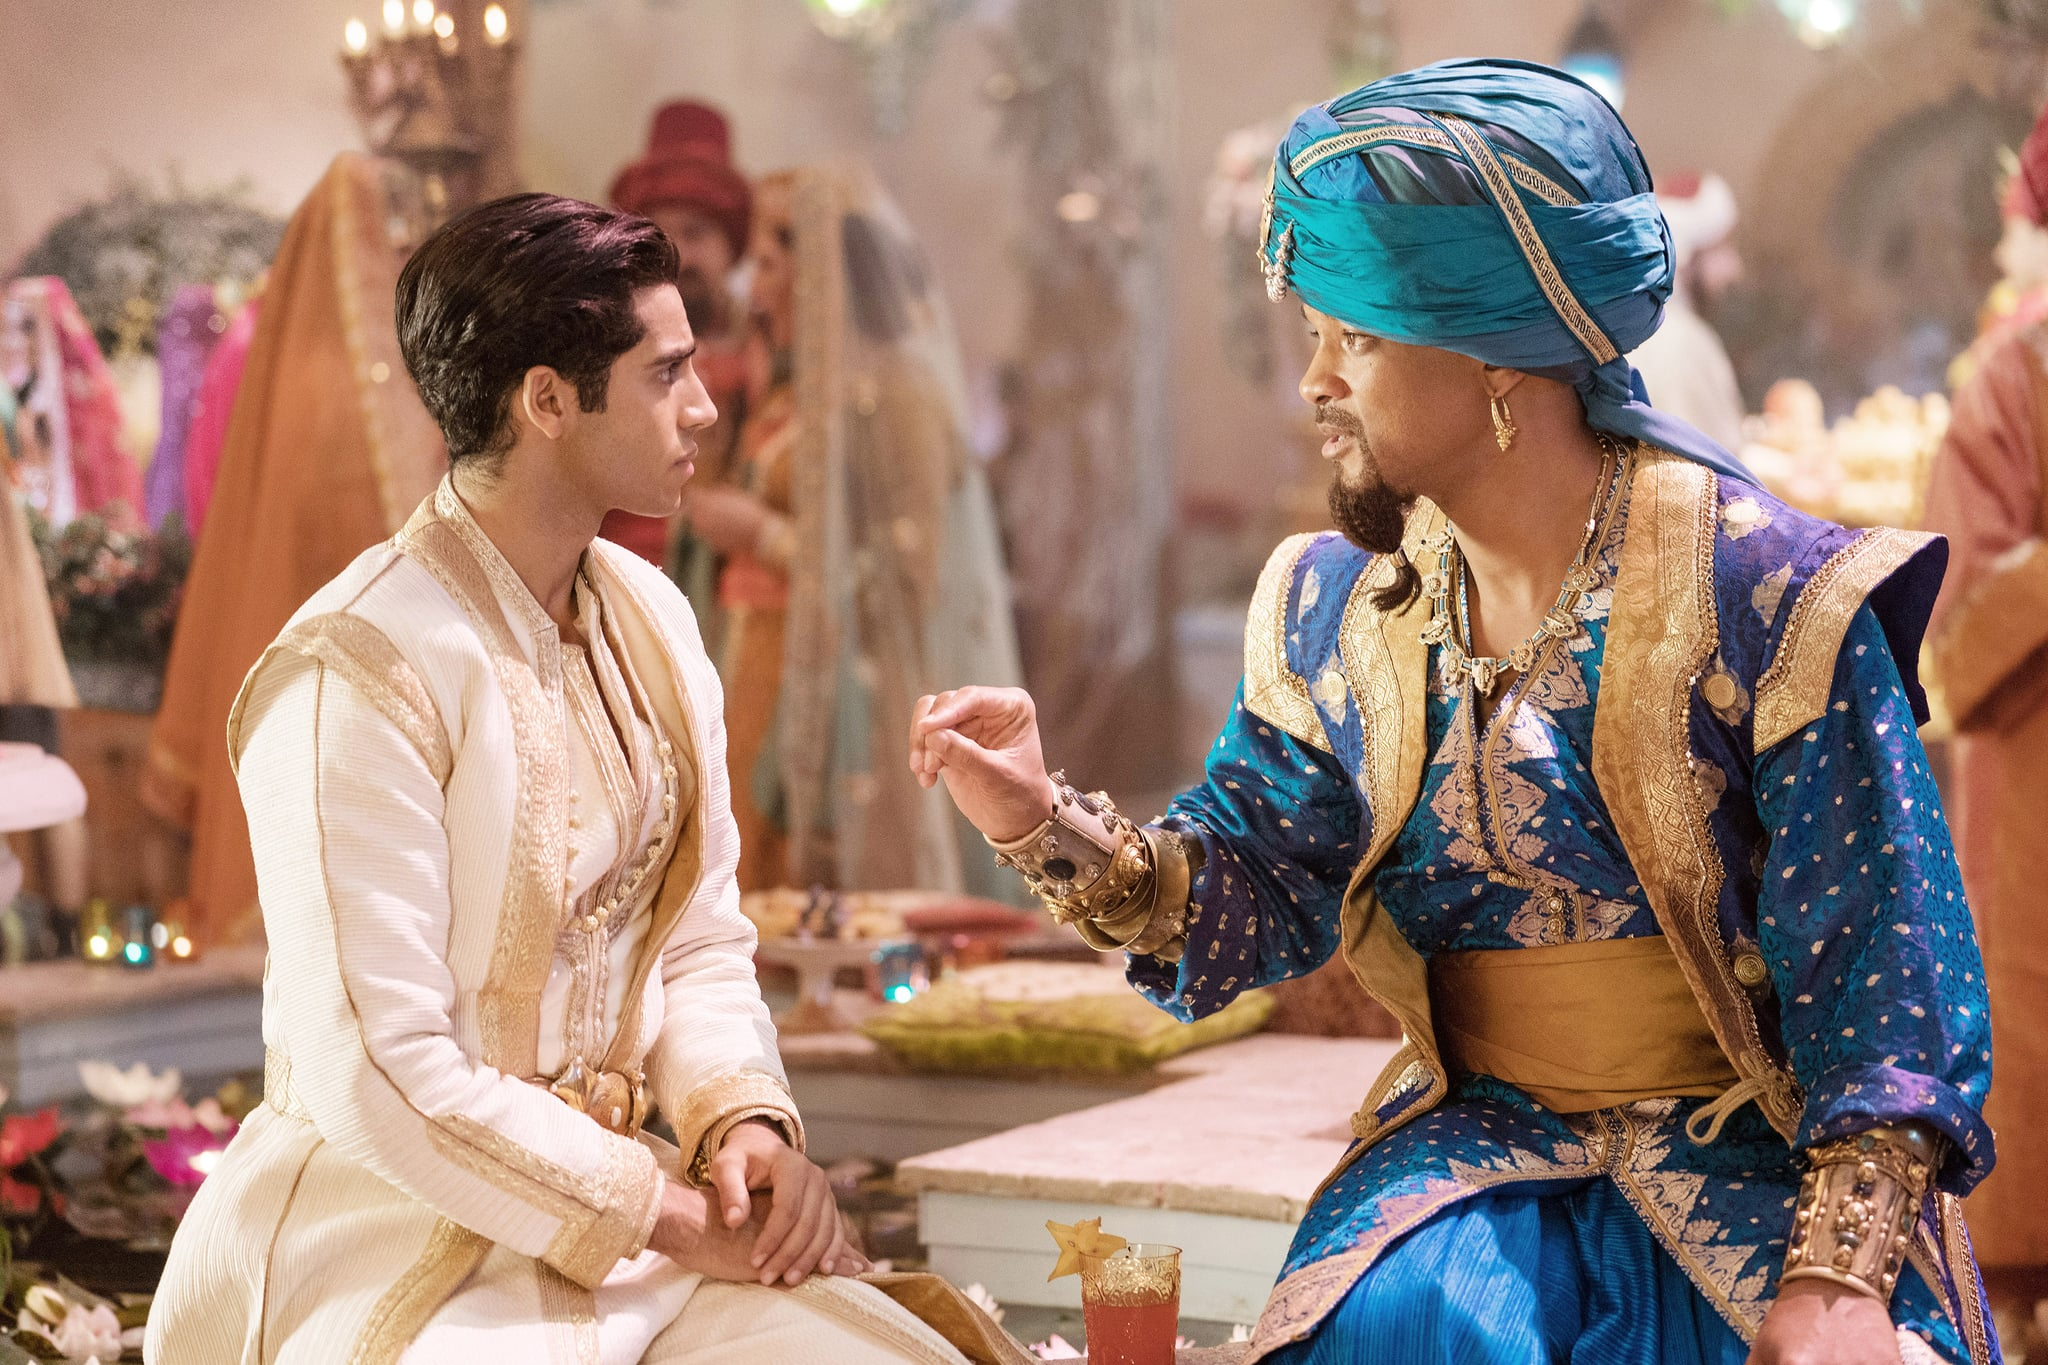 ALADDIN, from left: Mena Massoud as Aladdin, Will Smith as the Genie, 2019. ph: Daniel Smith /  Walt Disney Studios Motion Pictures / courtesy Everett Collection